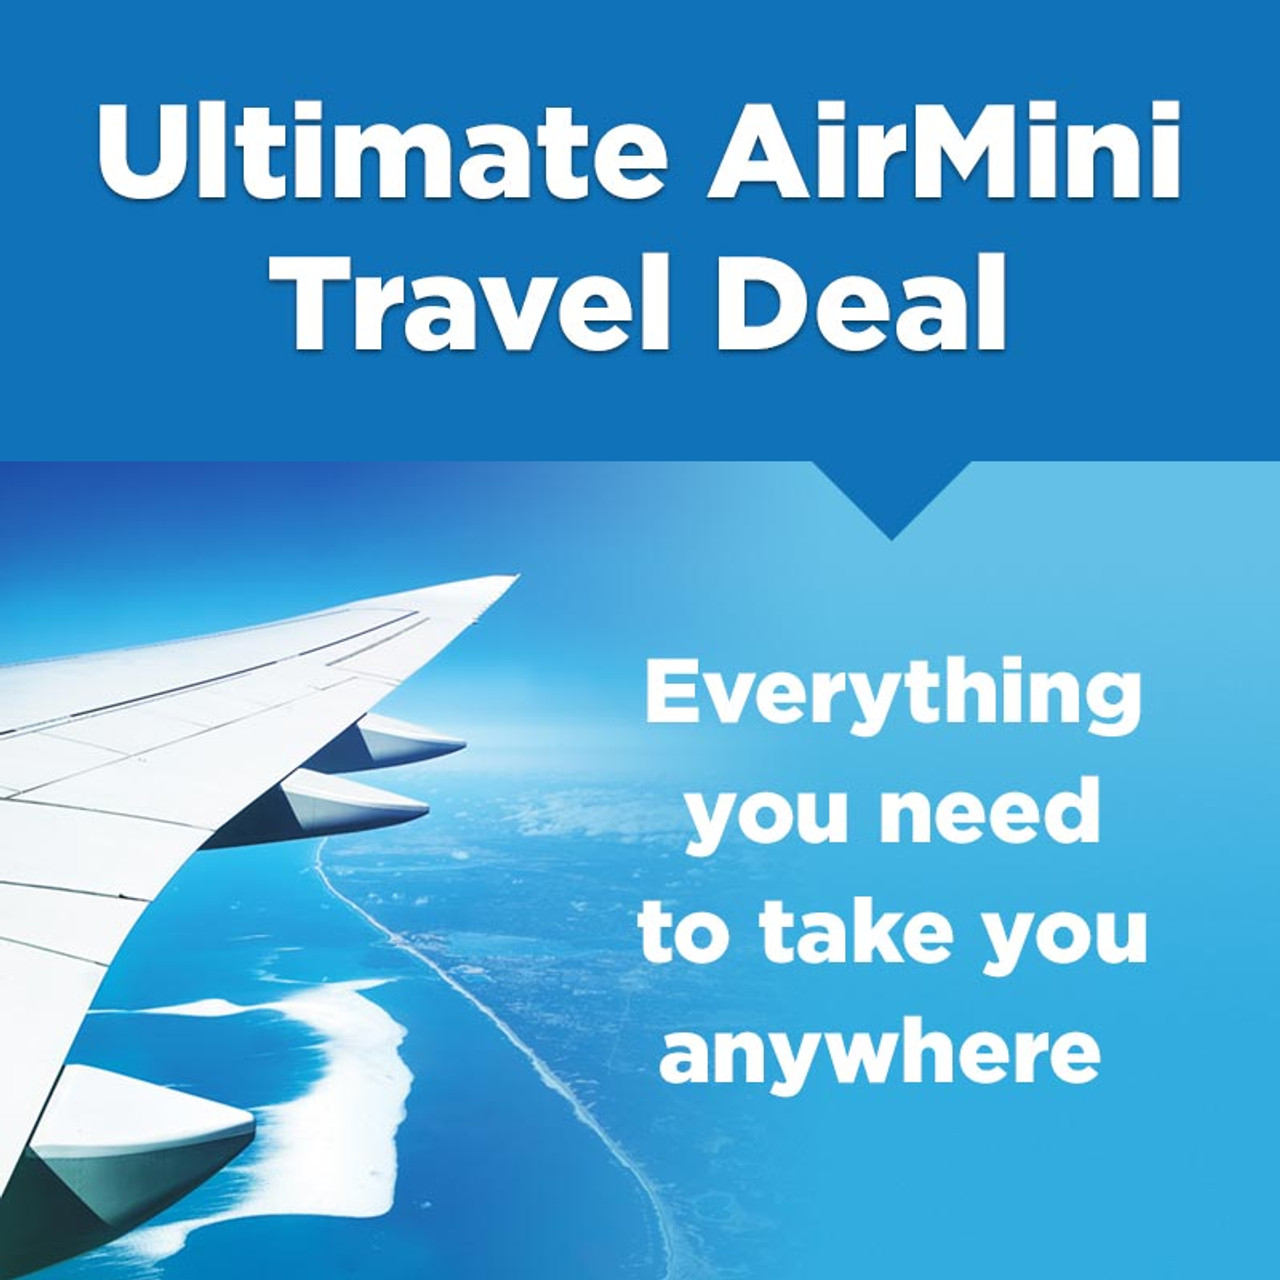 Ultimate AirMini Travel Deal